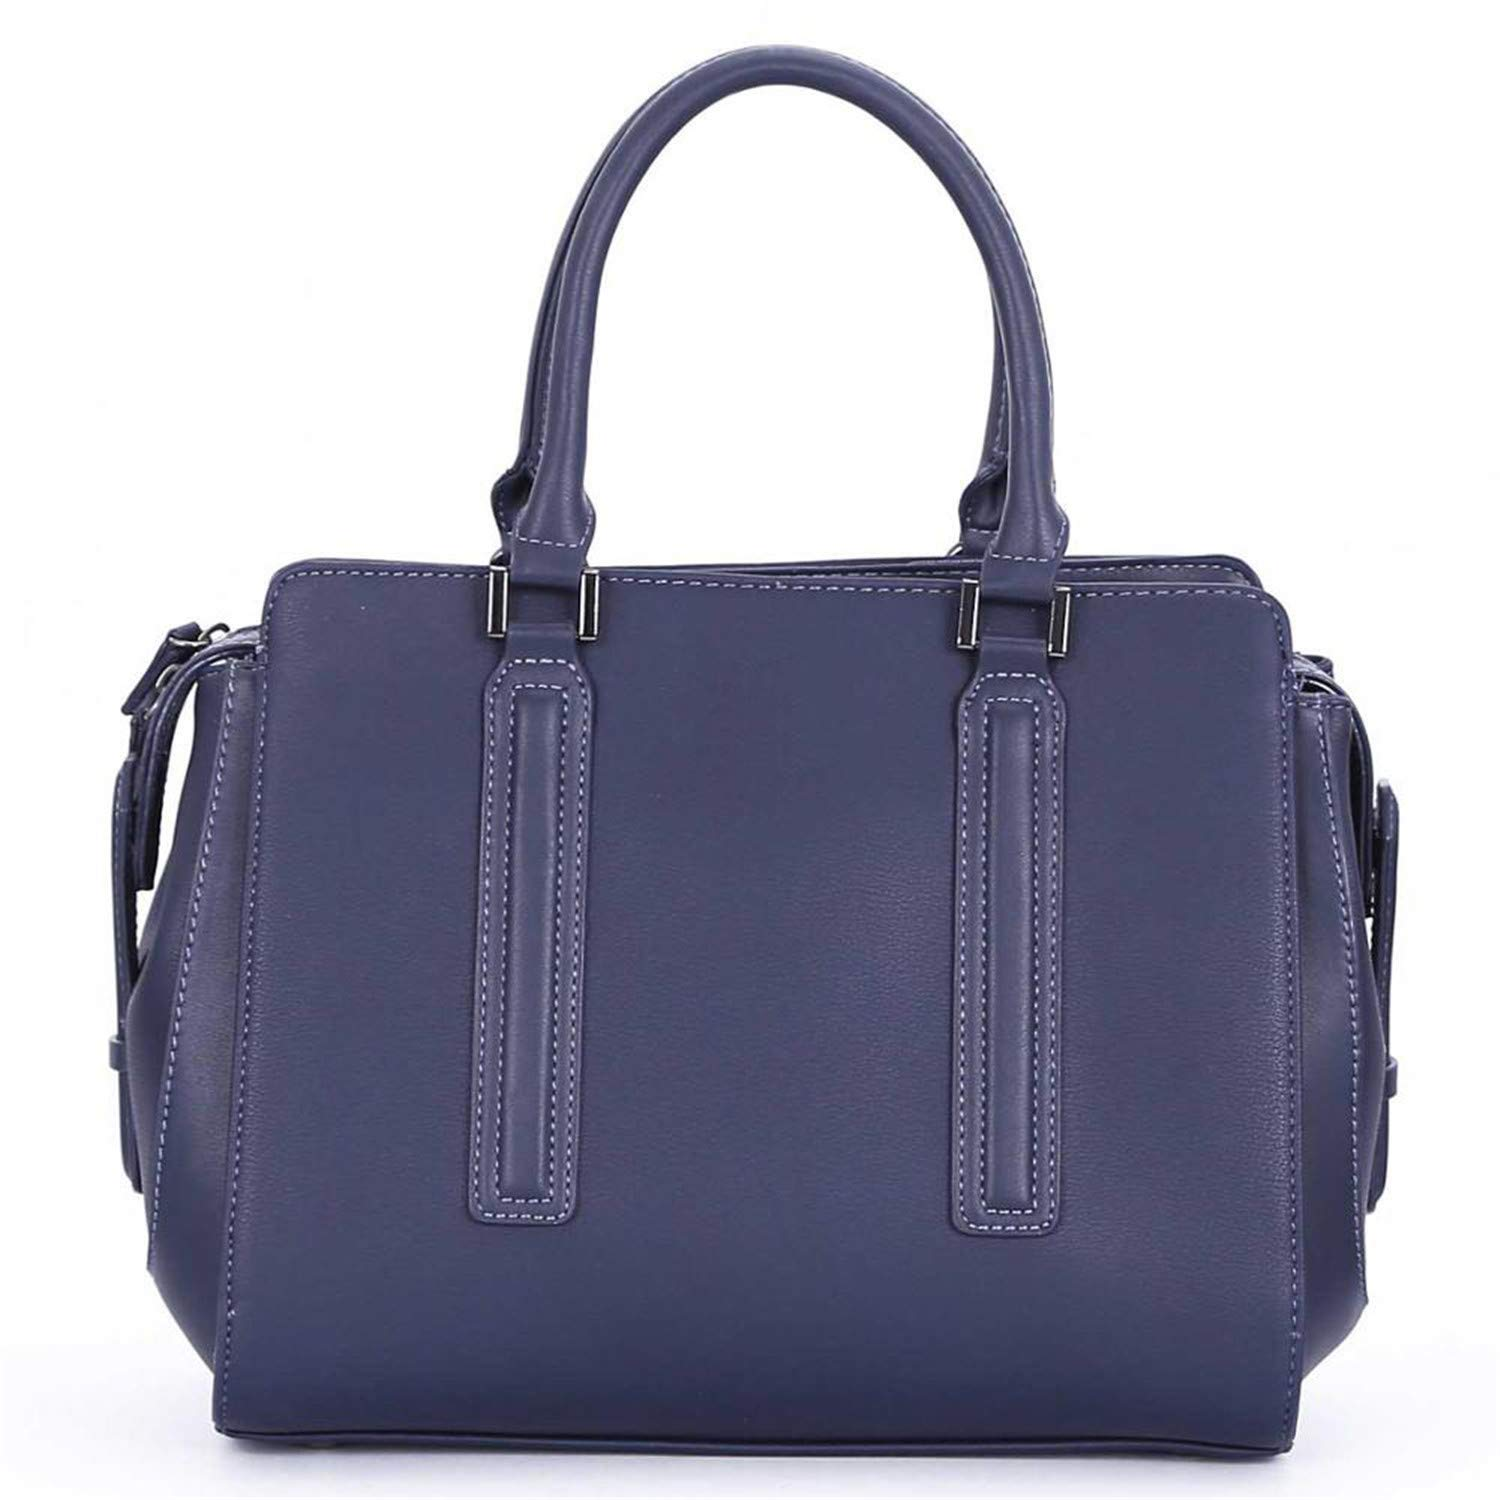 Tellusa Women Top Handle Bags Pu Leather Female Shoulder Bags Large Lady Solid Handbag Girl Brand Tote Bag Drop Shipping